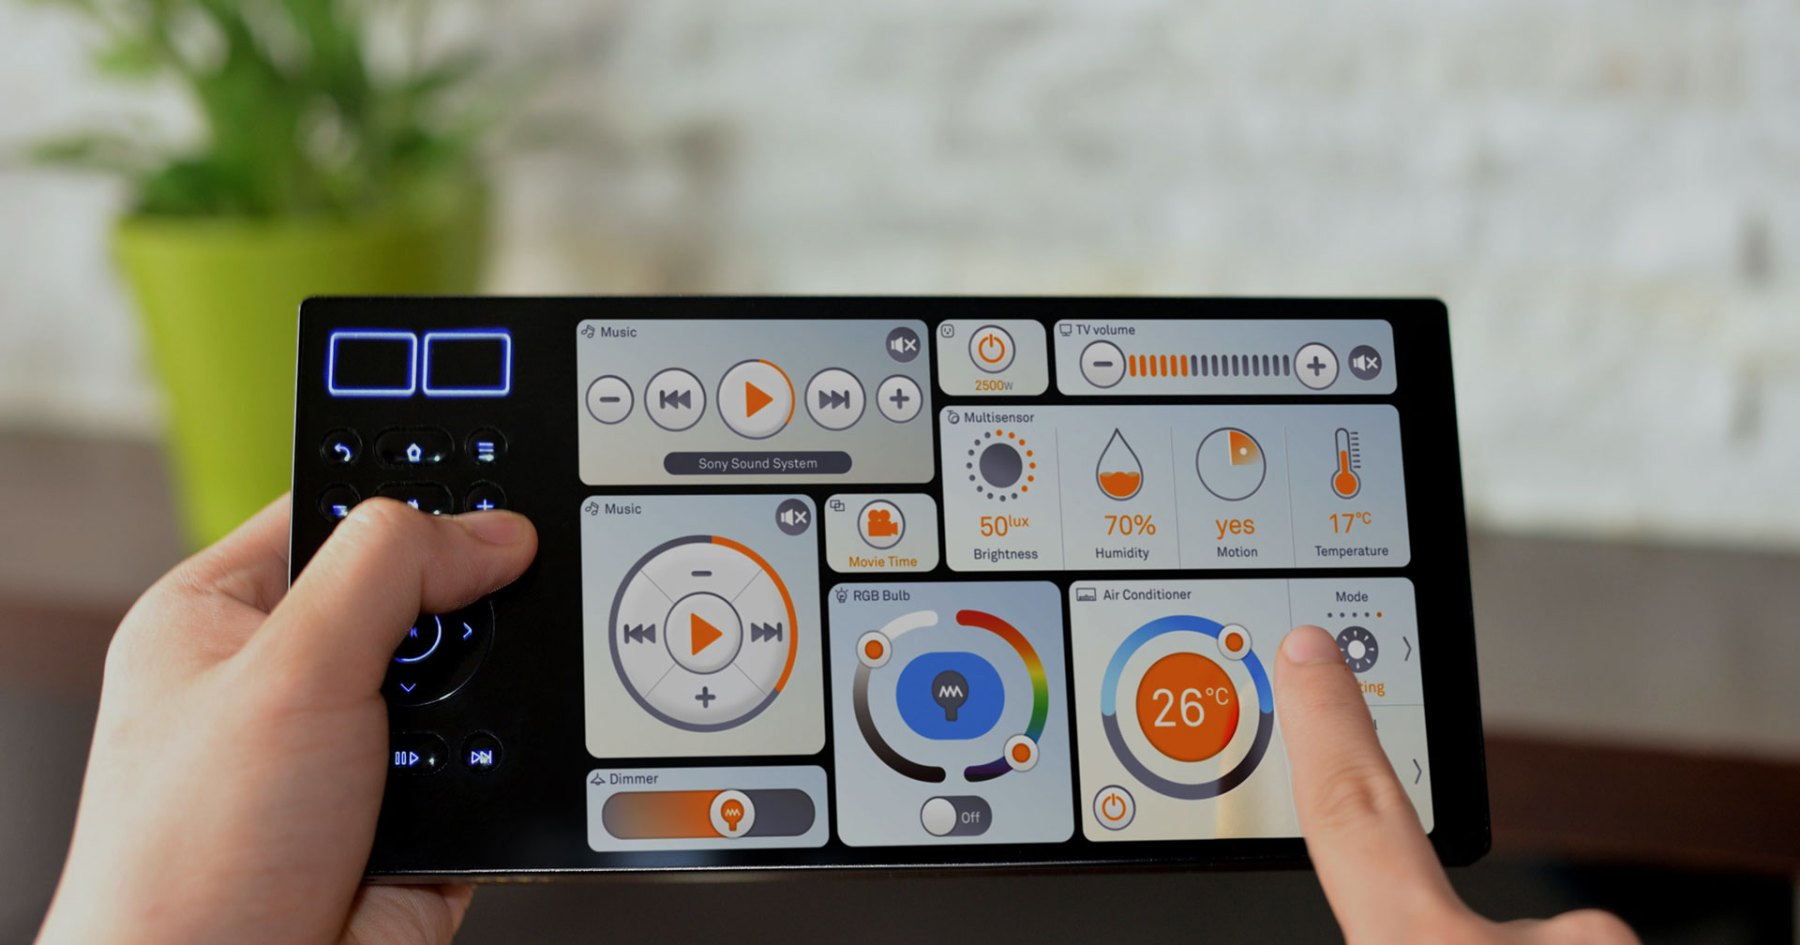 Control Your Entire Home from a Single Tablet